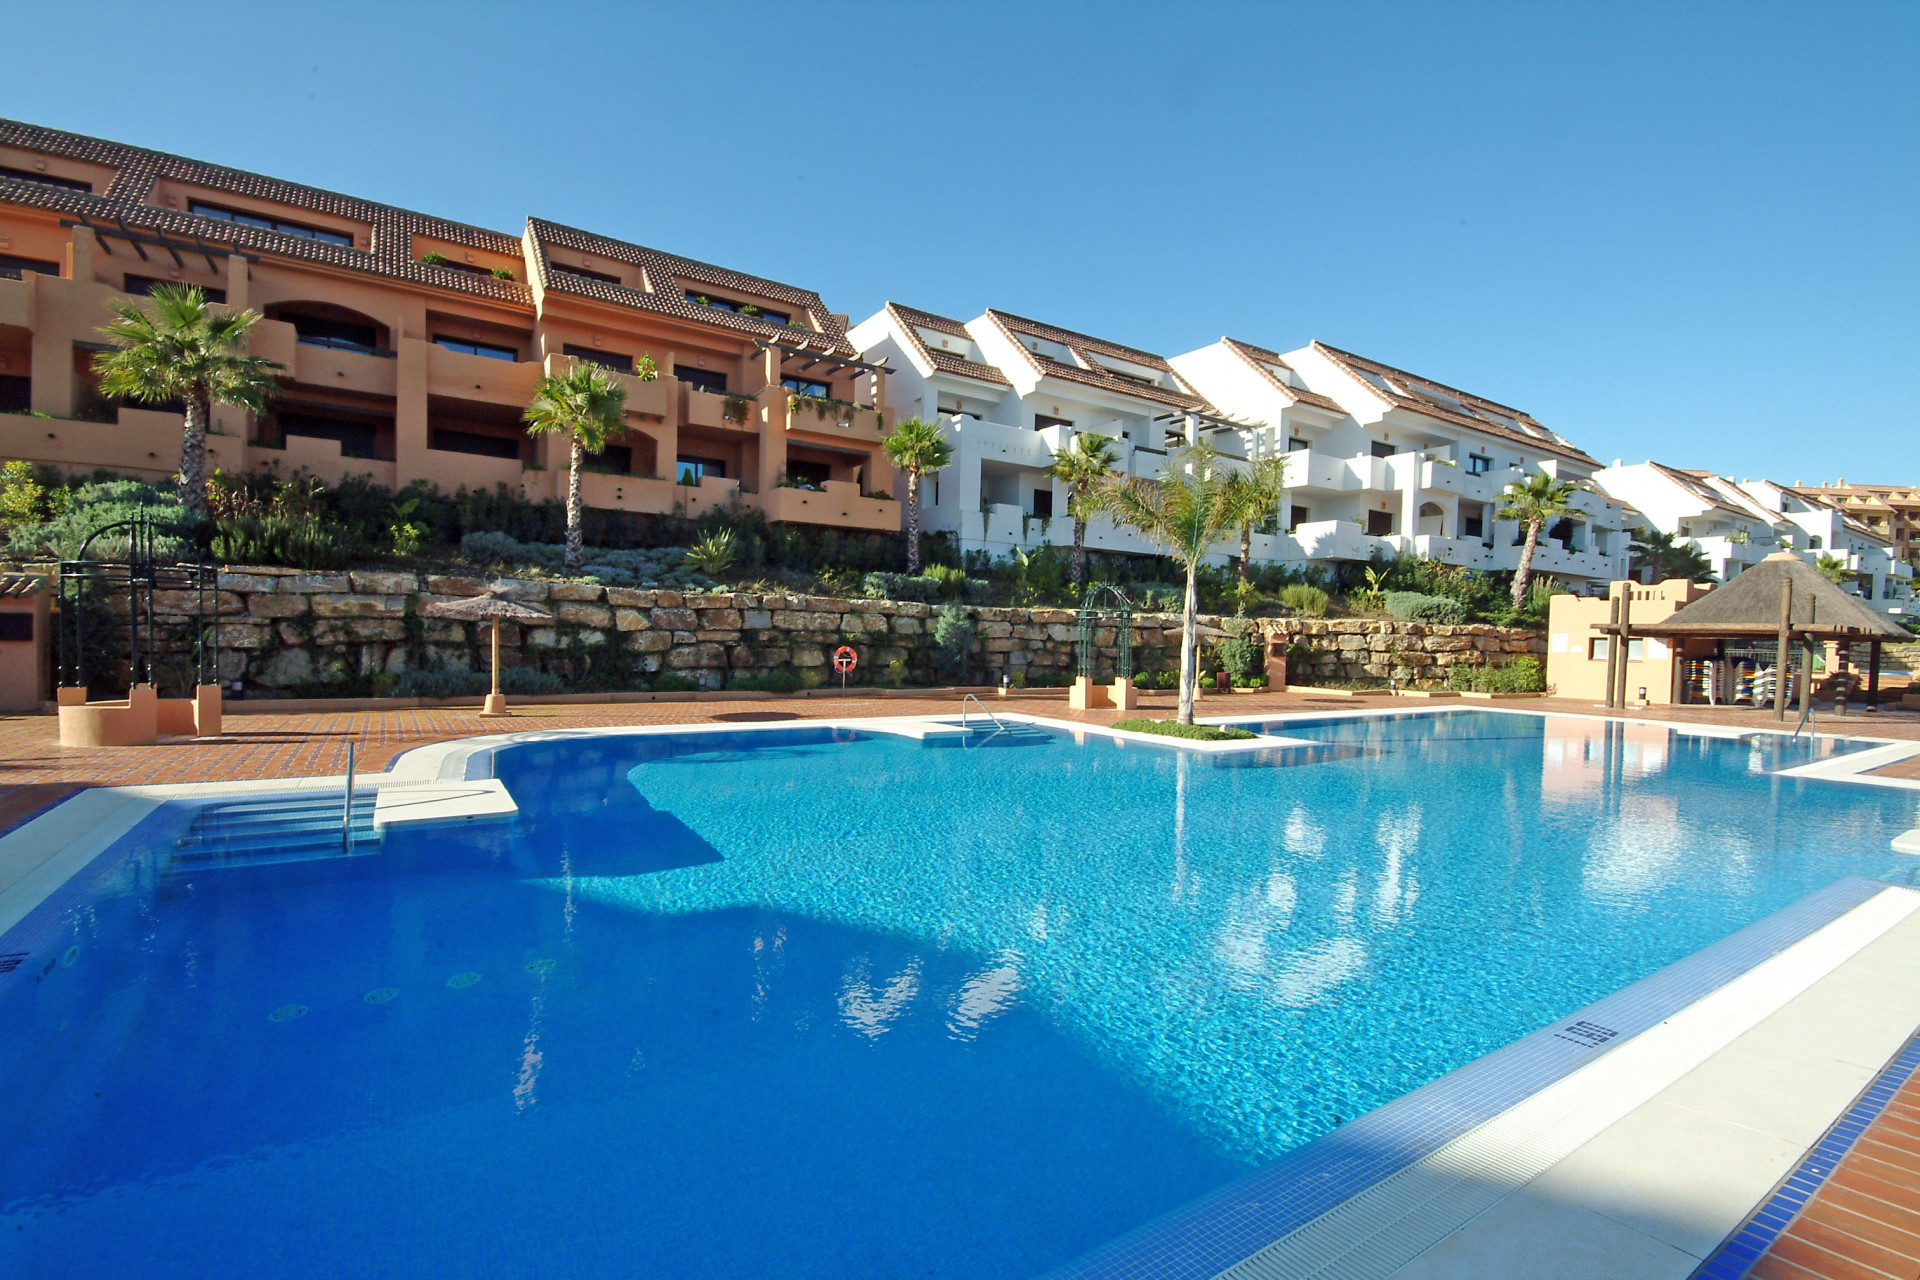 Bargain apartments for sale in Duquesa - 5 available fully furnished and ready to rent